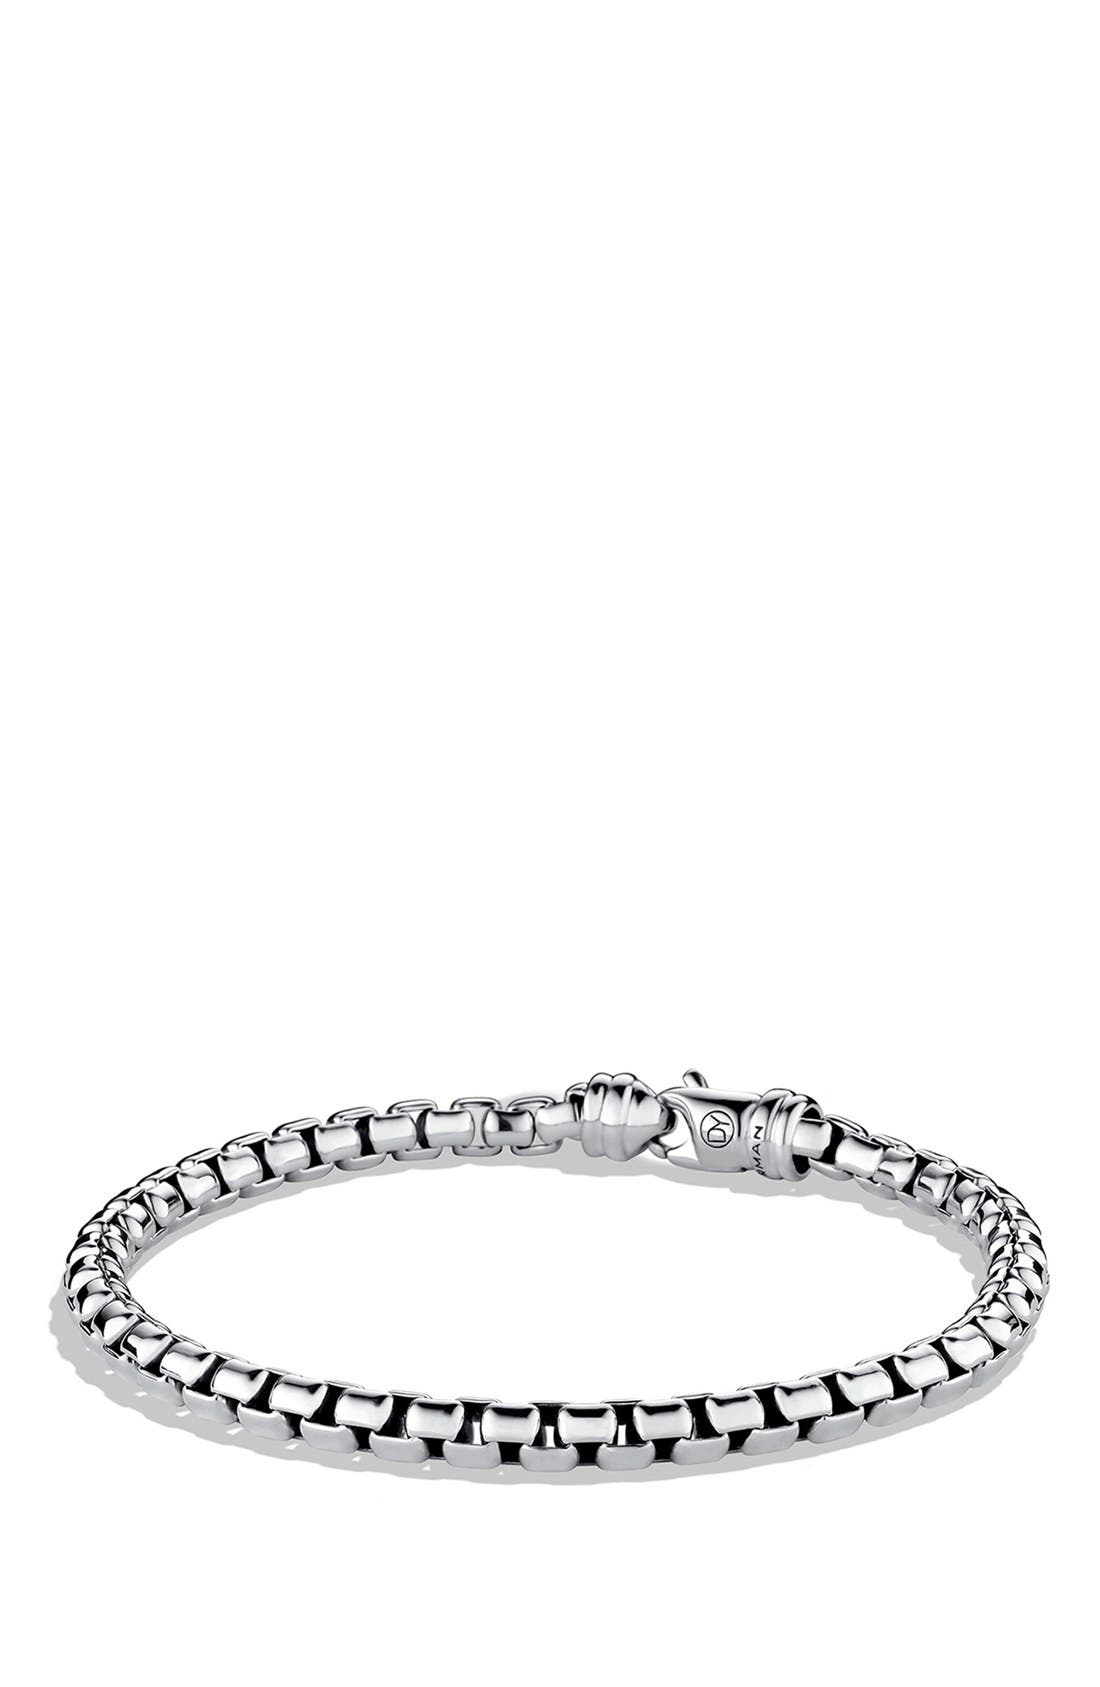 David Yurman 'Chain' Large Link Box Chain Bracelet